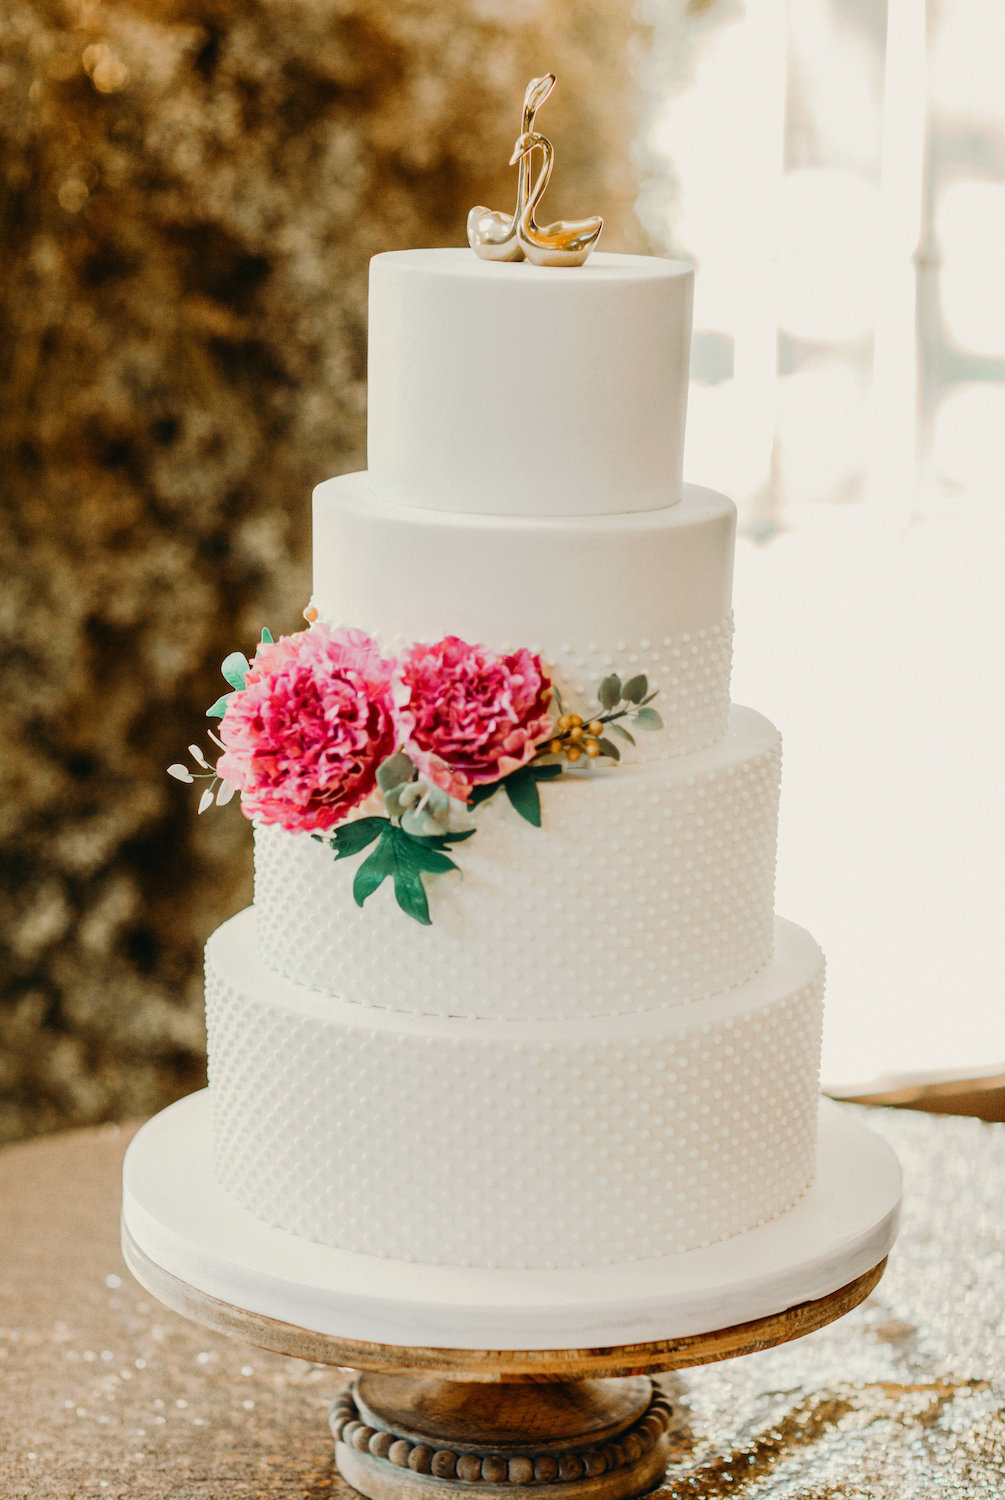 White studded wedding cake with brass swan topper